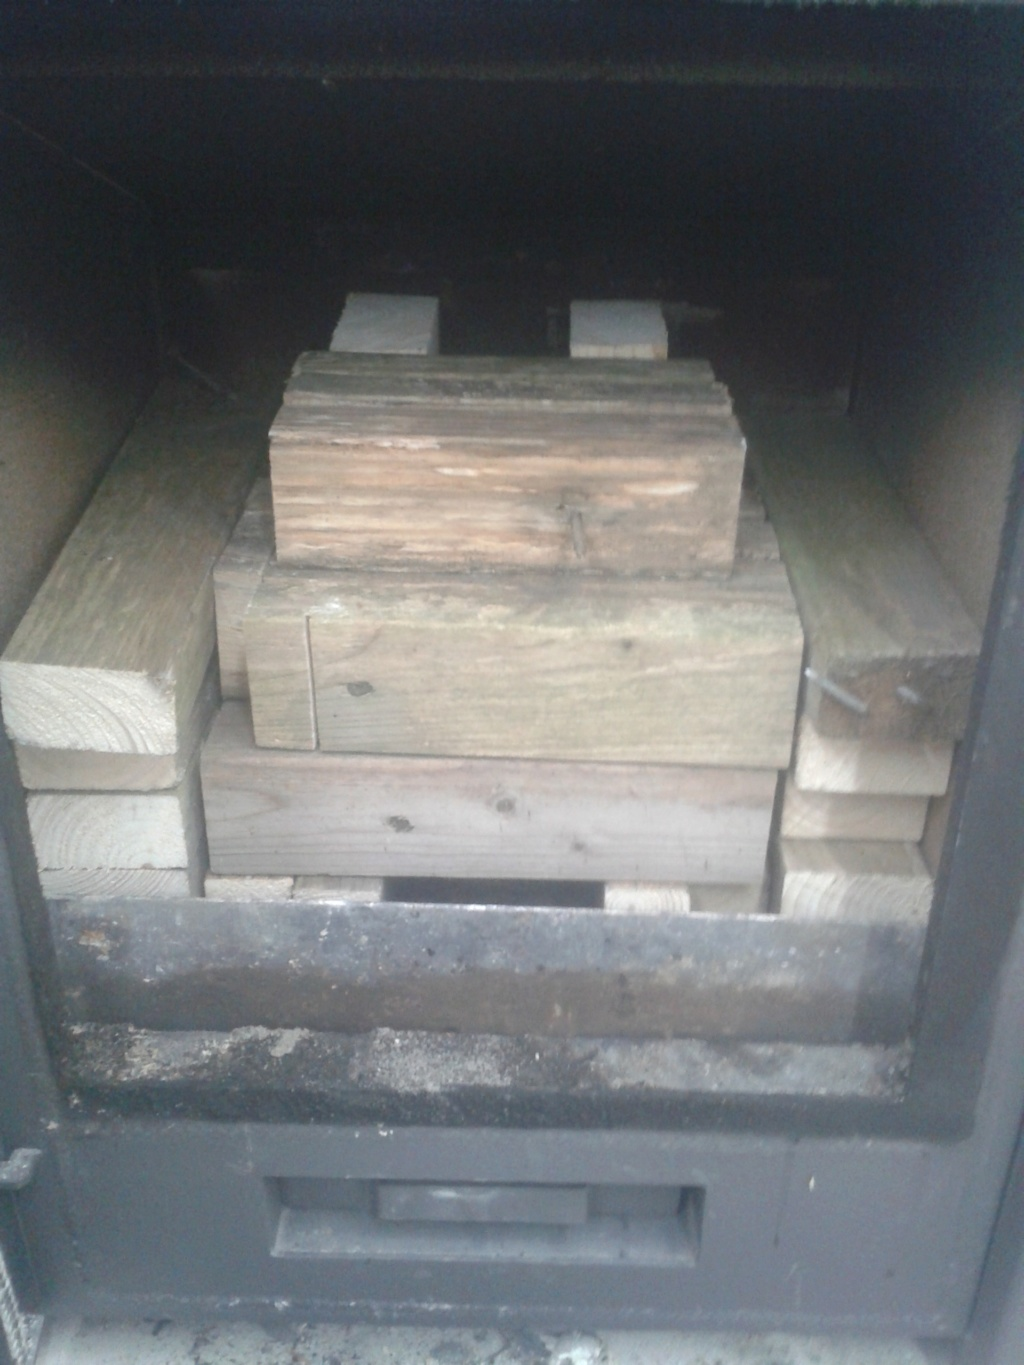 new wood stove rocket stove built inside of it  20181114